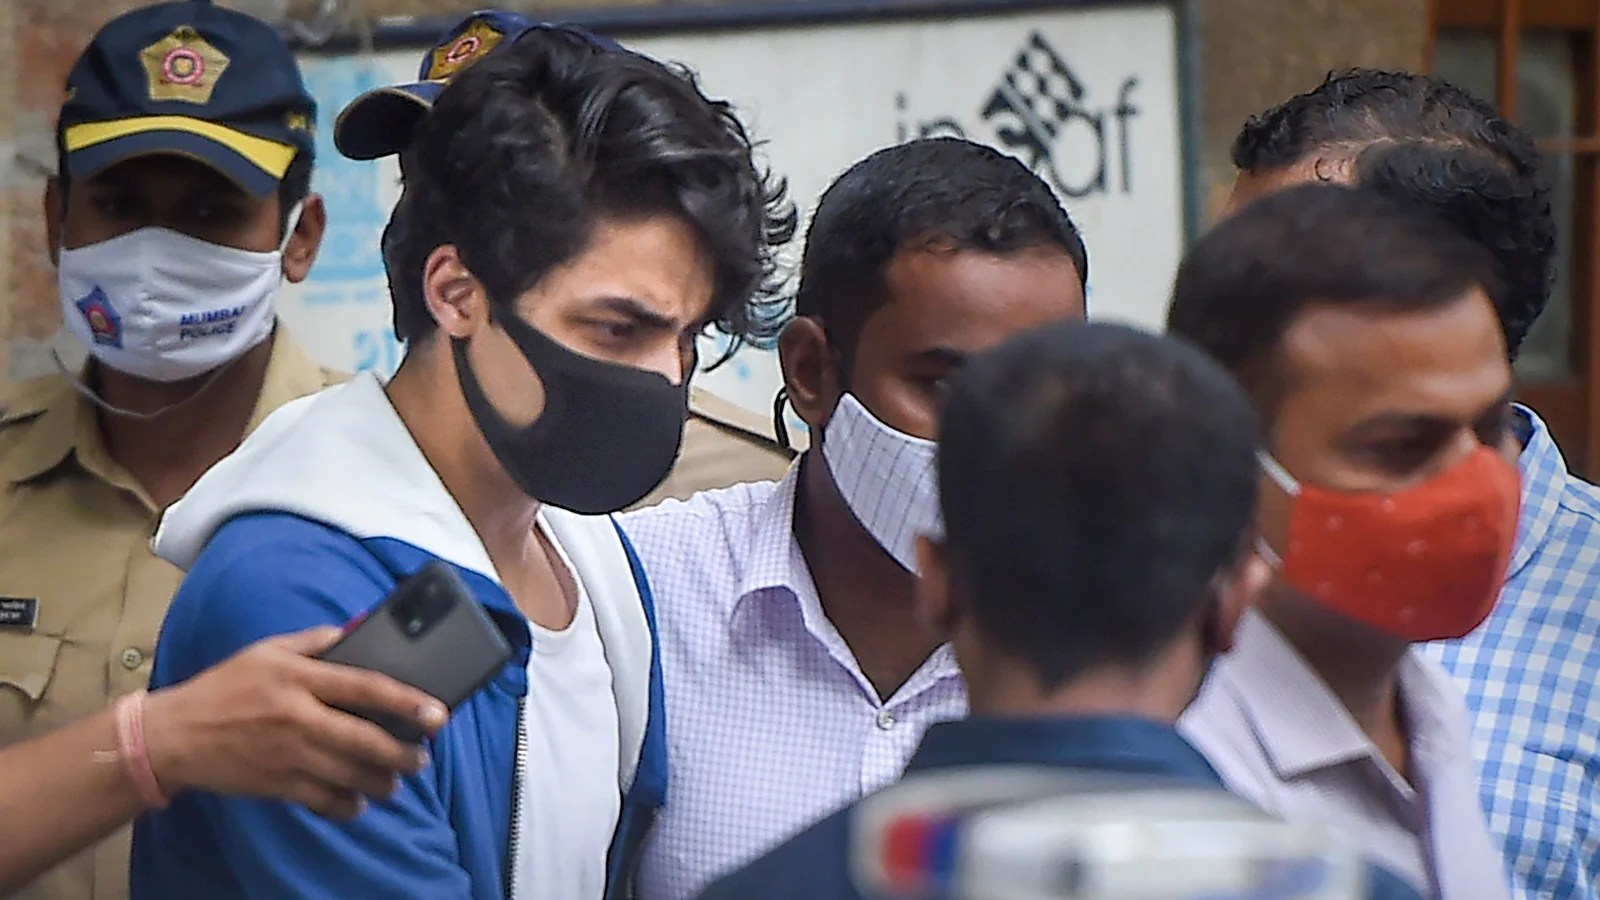 News updates from HT: Bombay HC to hear Aryan Khan's bail plea on October 26 and all the latest news